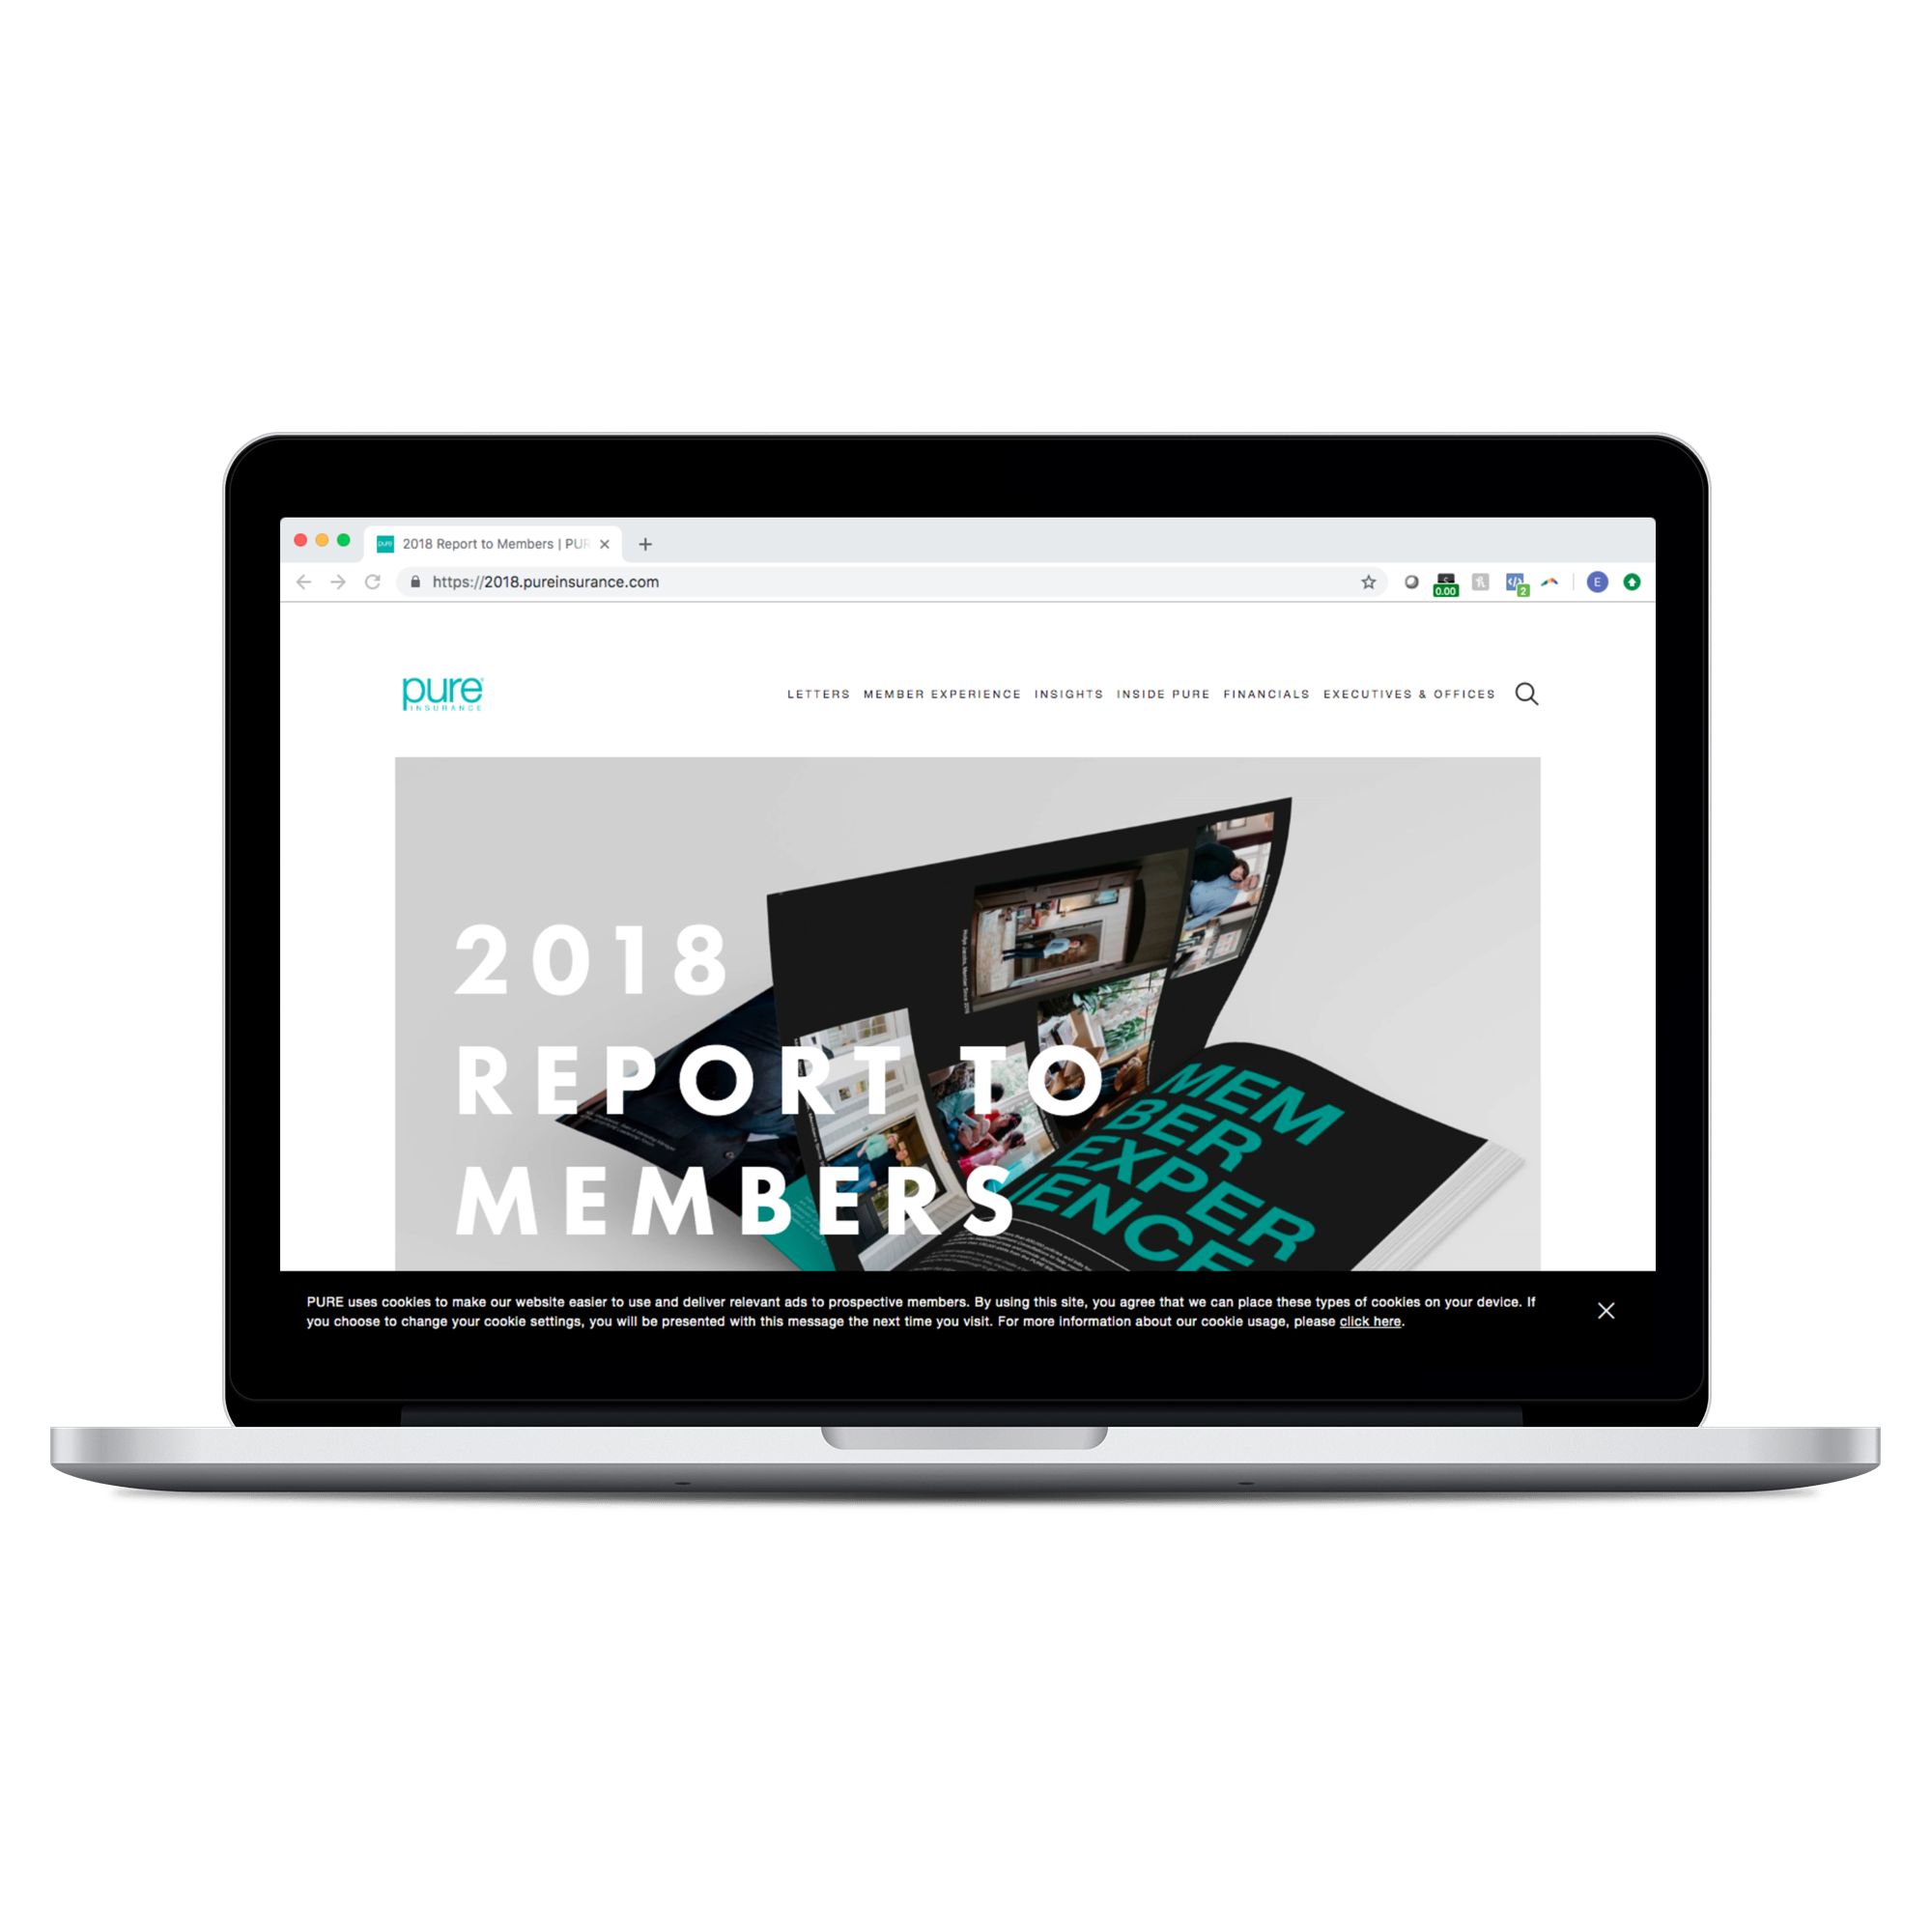 Portfolio_2018 Report to Members_macbookpro13_front 2.png